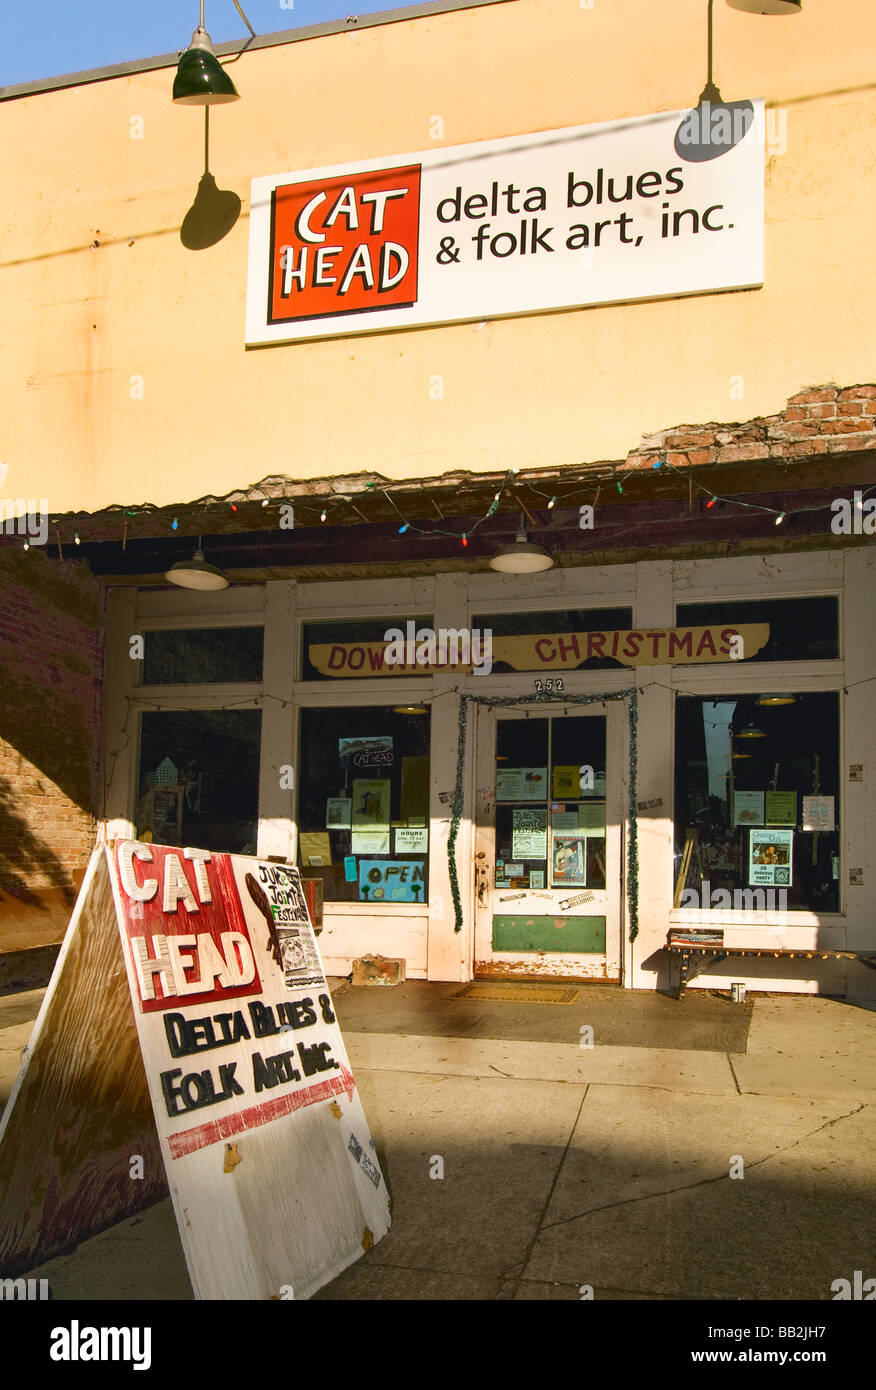 Exterior of the Cat Head Delta Blues and Folk Art record store in Clarksdale, Mississippi - Stock Image